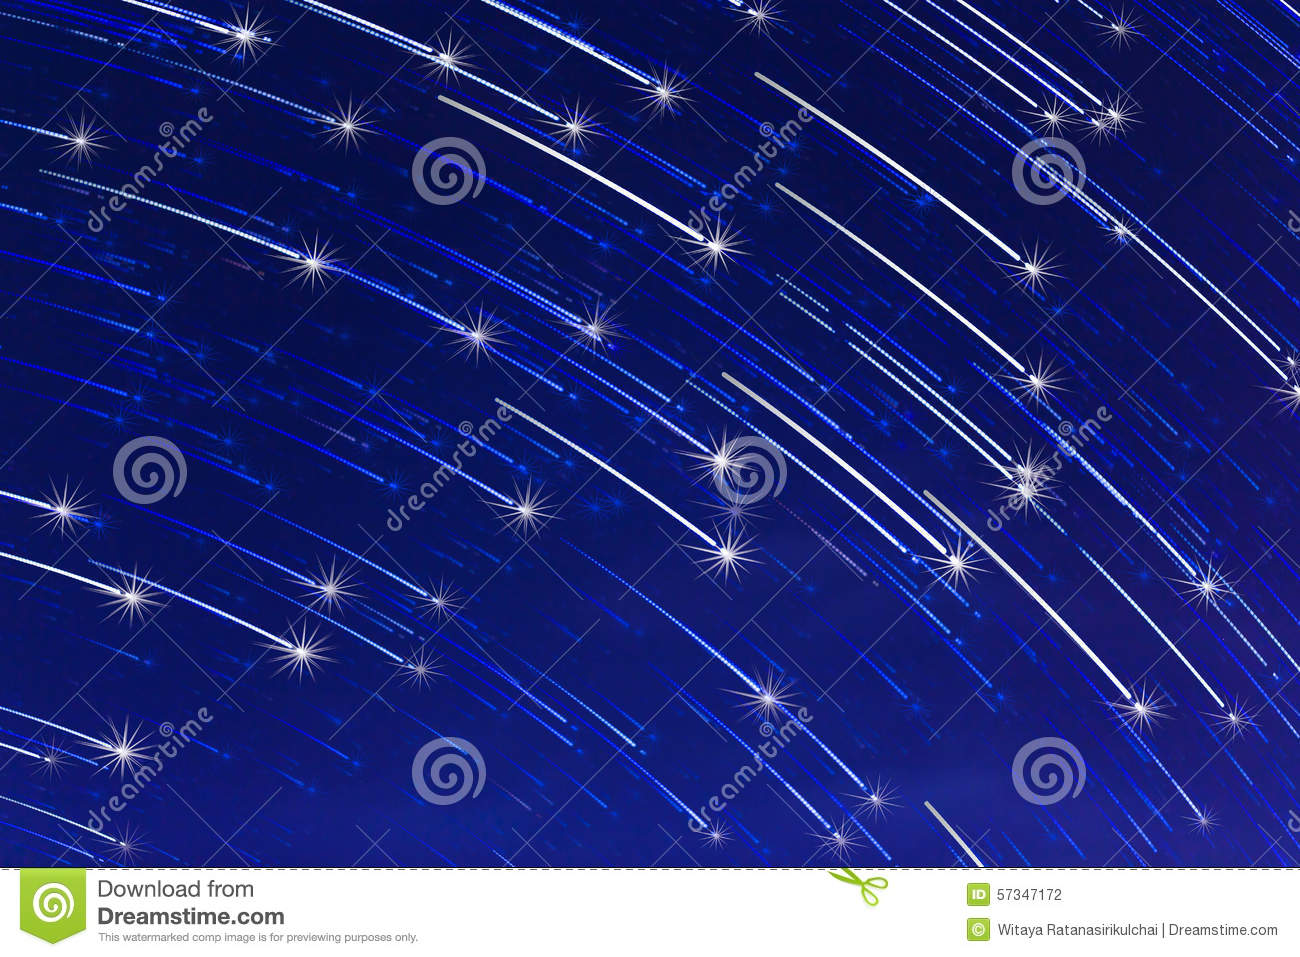 Abstract long exposure of star trails with sparkle on blue sky abstract long exposure of star trails with sparkle on blue sky background malvernweather Choice Image